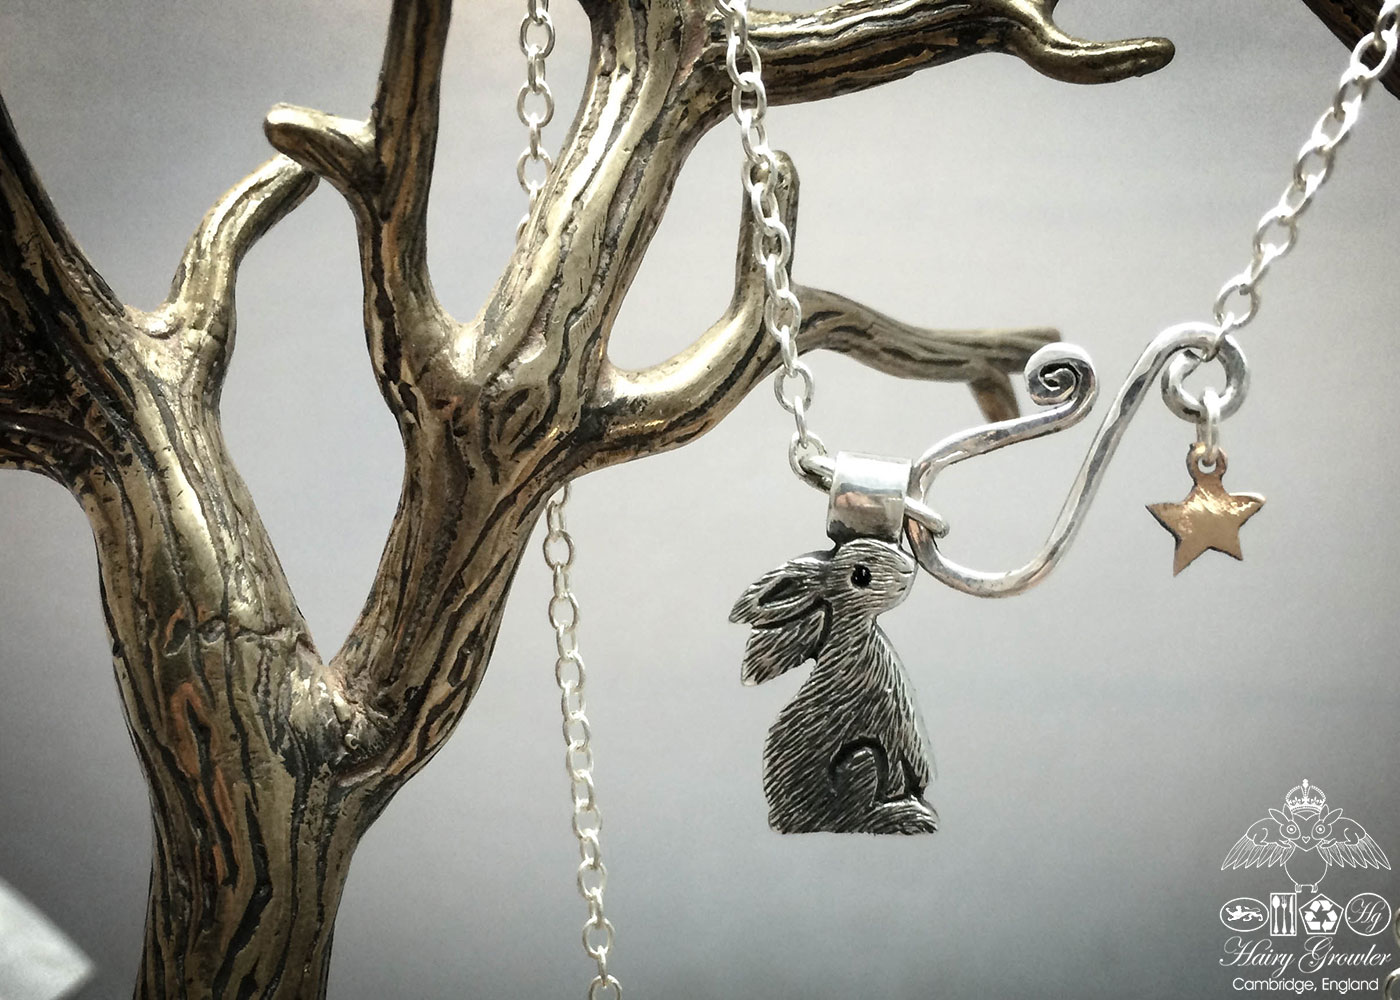 handmade and recycled silver coins moon gazing hare charm for a tree sculpture, necklace or bracelet